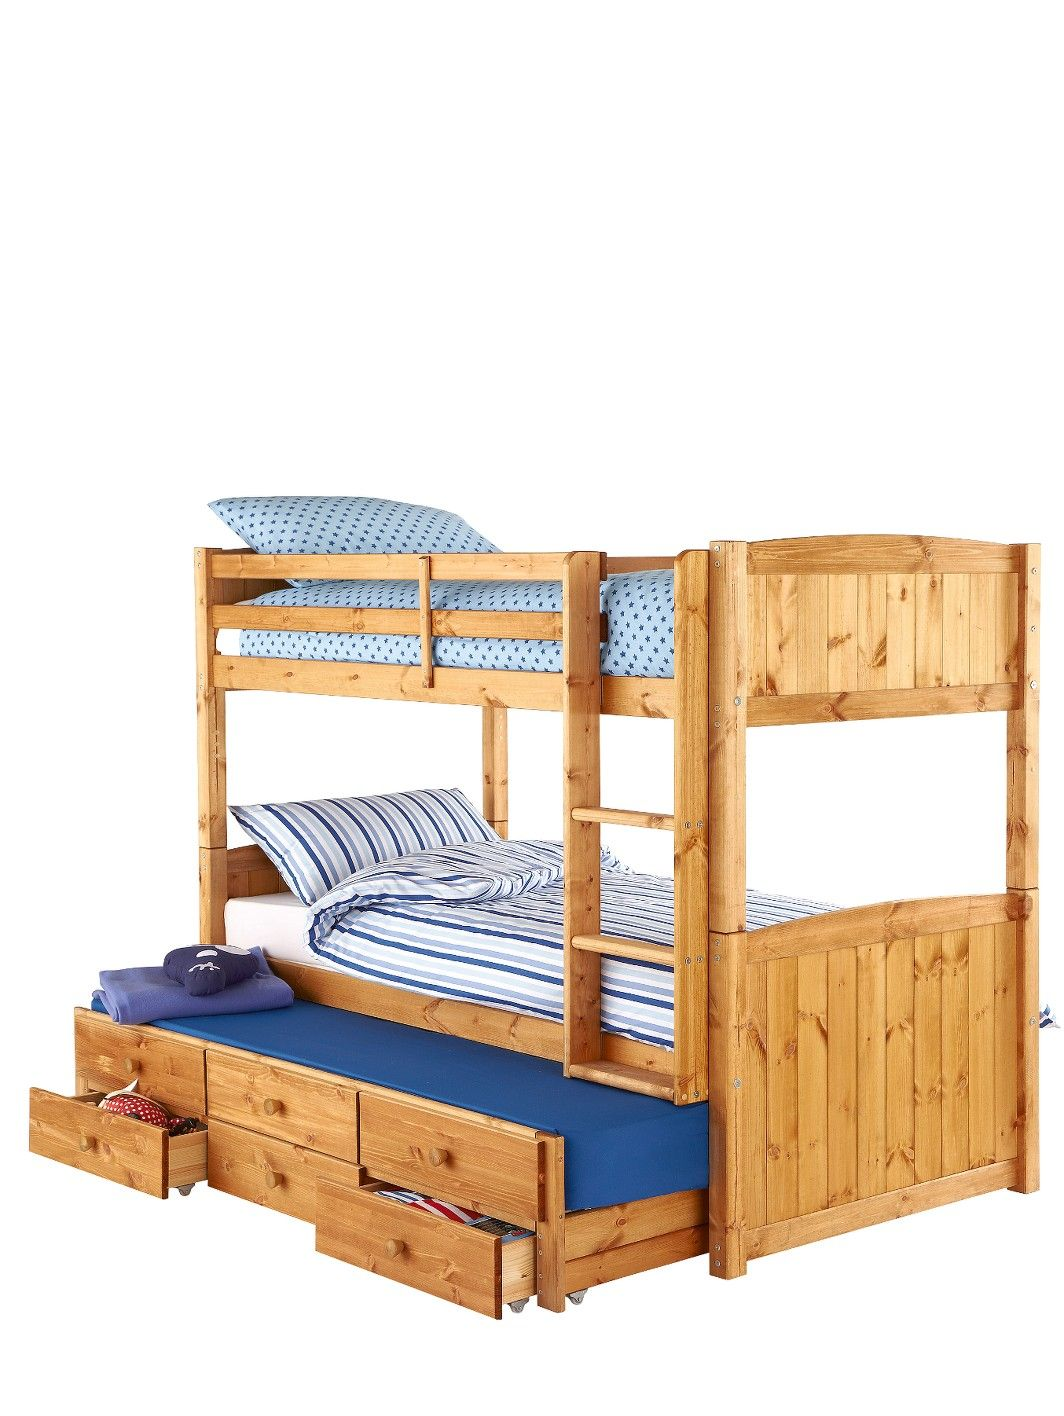 Pine bunk beds with storage - Bunk Bed